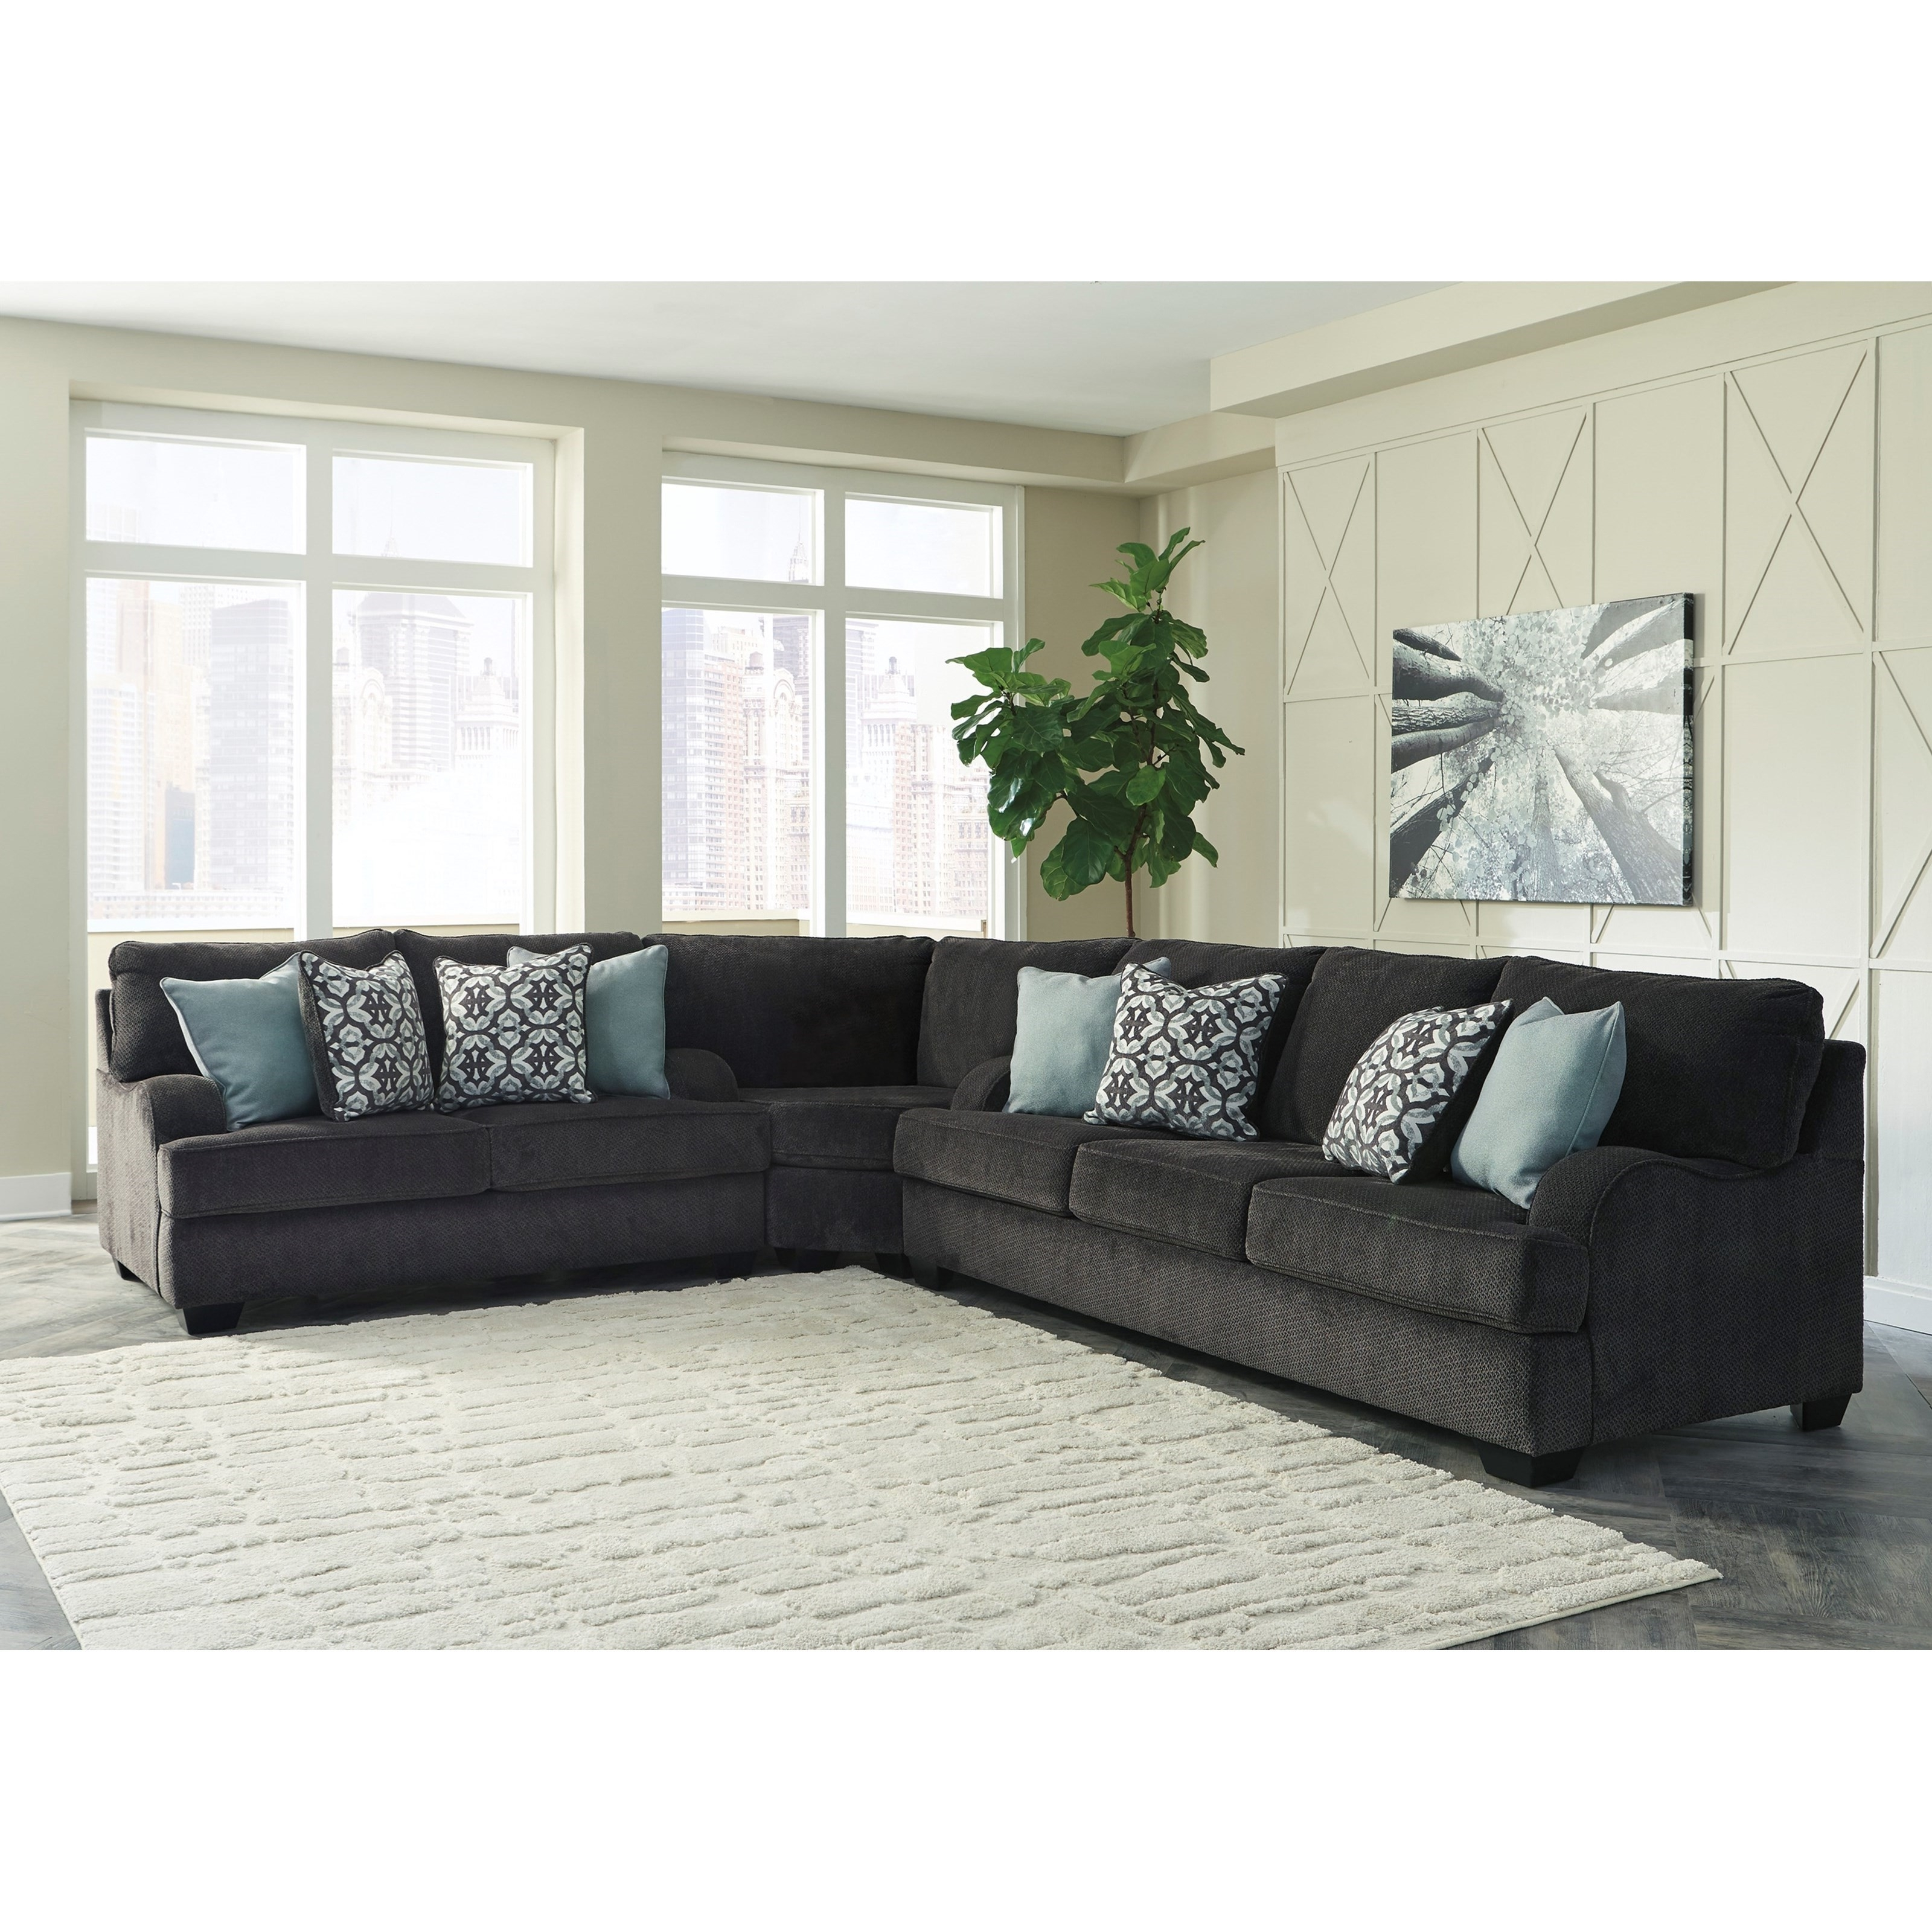 Jackson Ms Sectional Sofas In Fashionable Luxury Splitting Up A Sectional Sofa Hiding Unfinished Side (View 6 of 15)